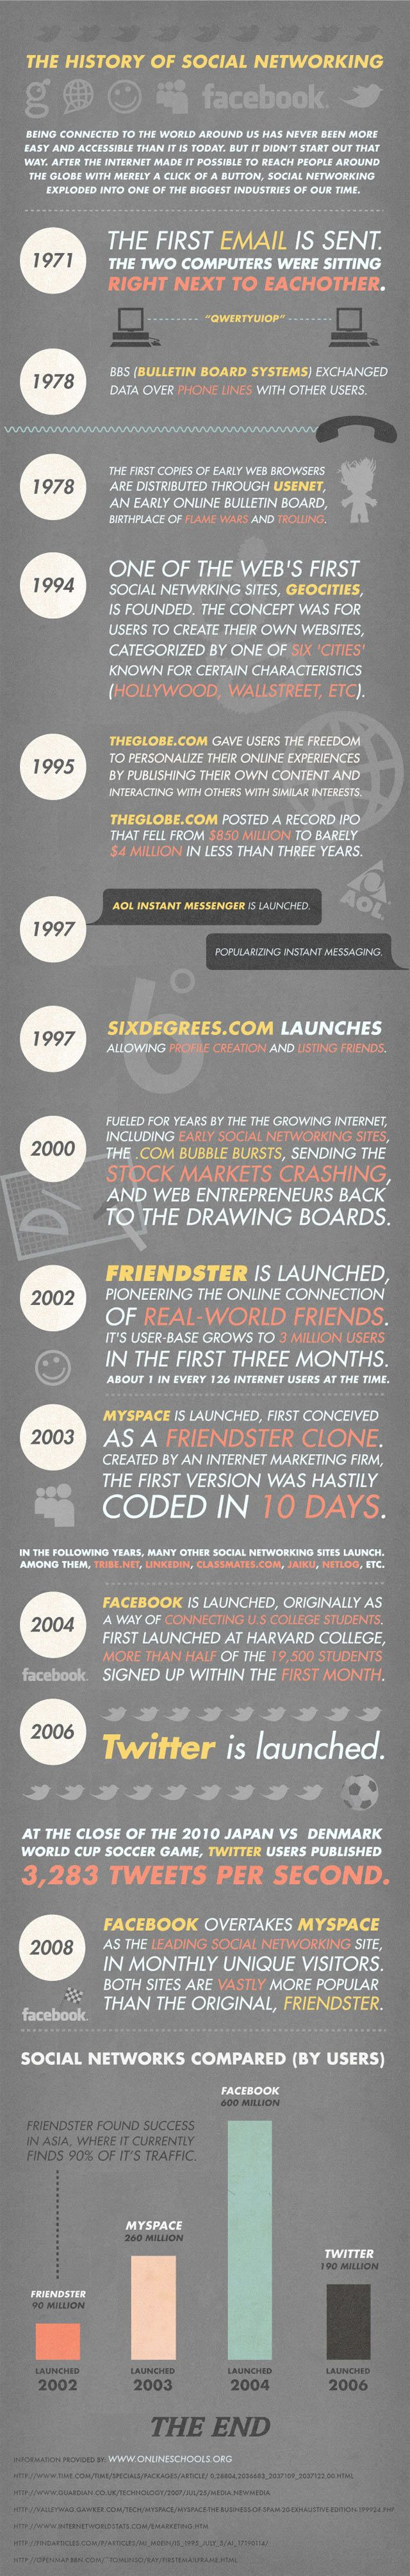 Marketing-Infographic-Infographic-The-History-of-Social-Networking.-Being-connected-to-the-world Marketing Infographic : #Infographic: The #History of #Social #Networking. Being connected to the world ...